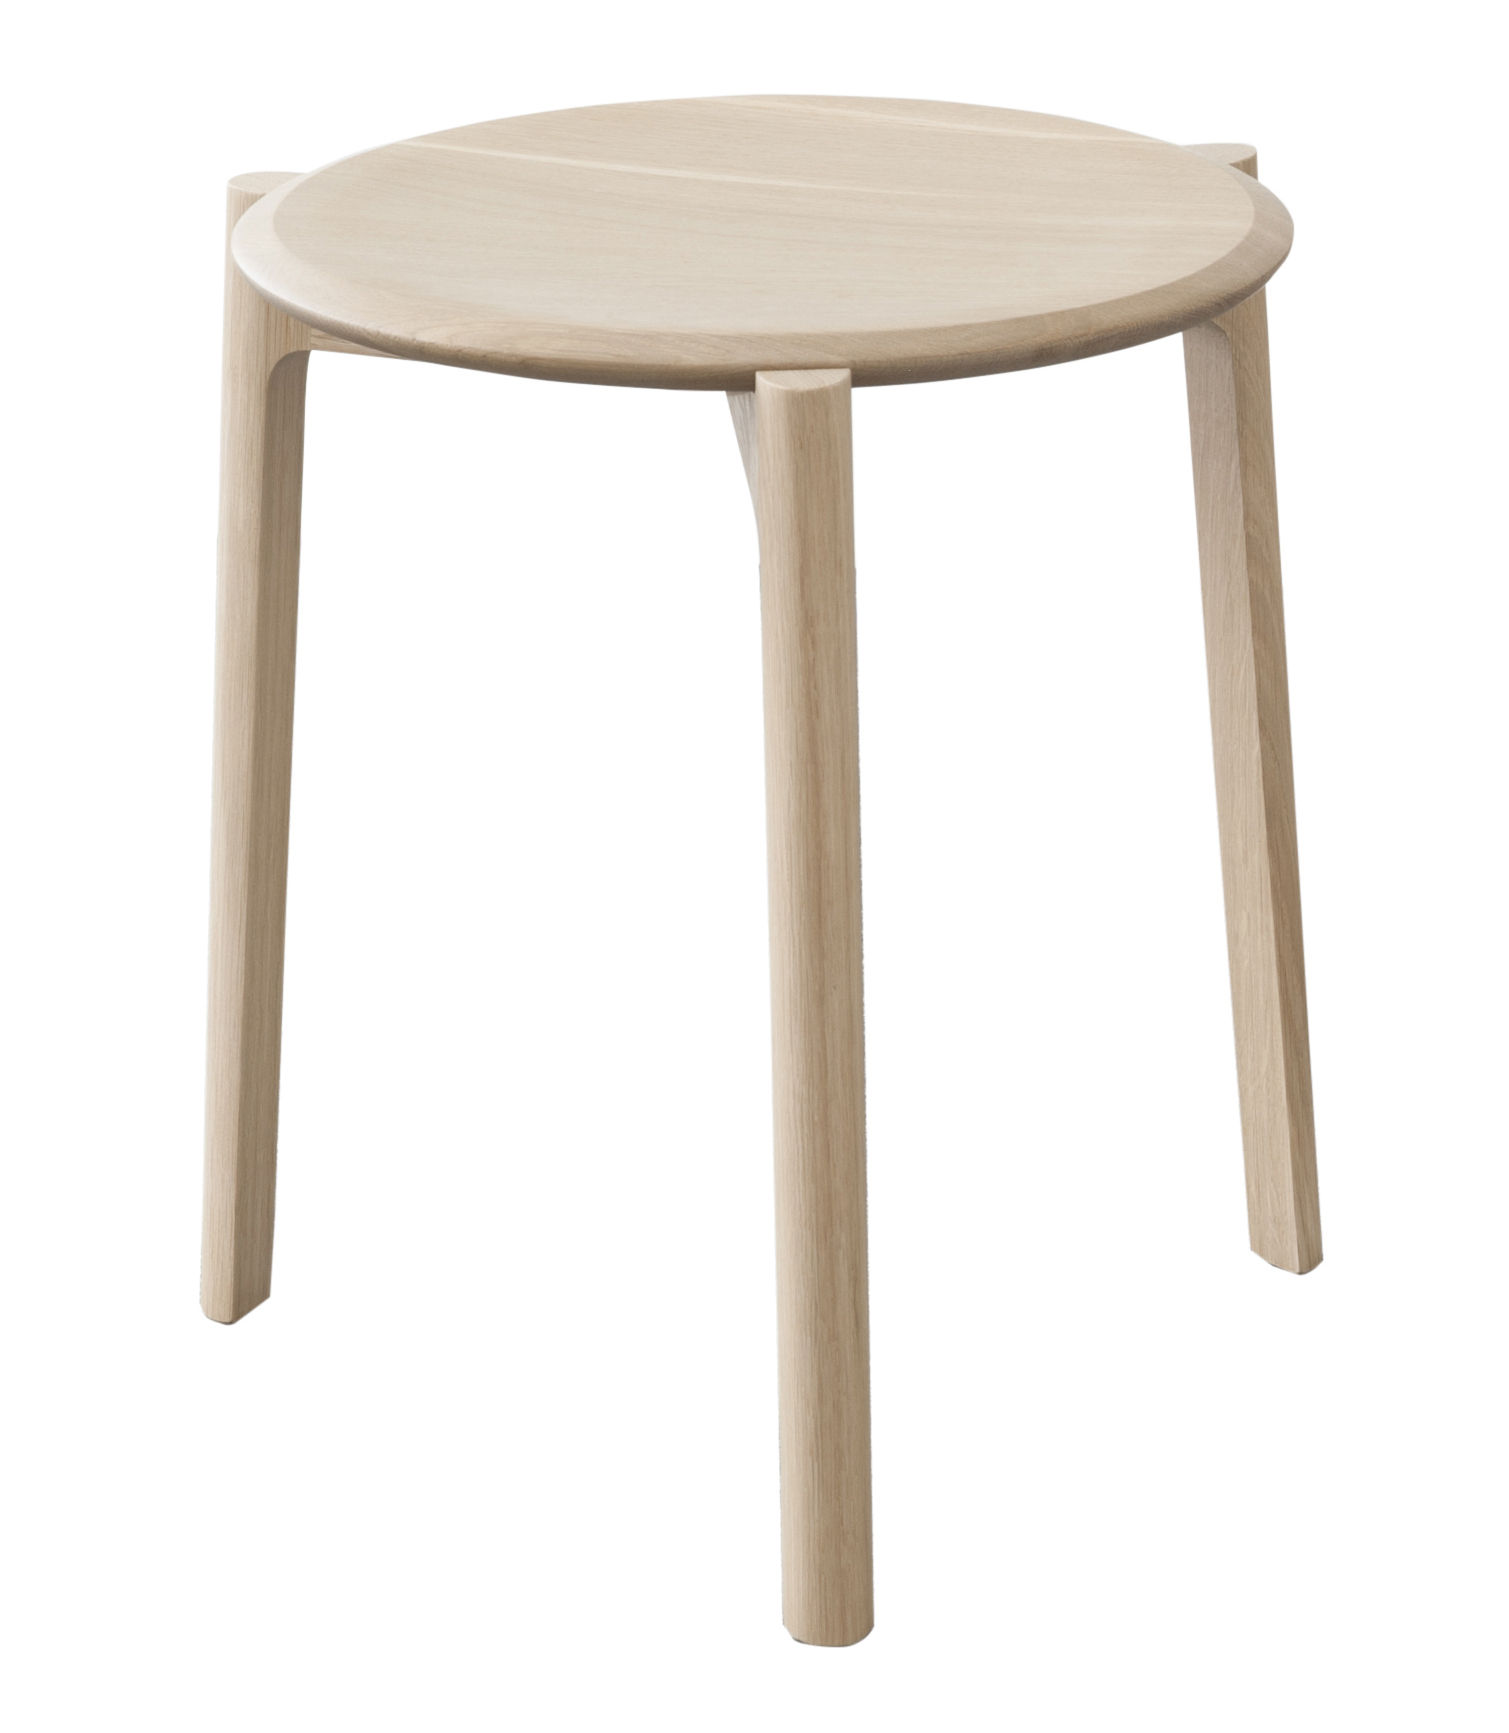 perfect high blogs seating gregor dining for or setting home any stool stackable living decor stools barstool